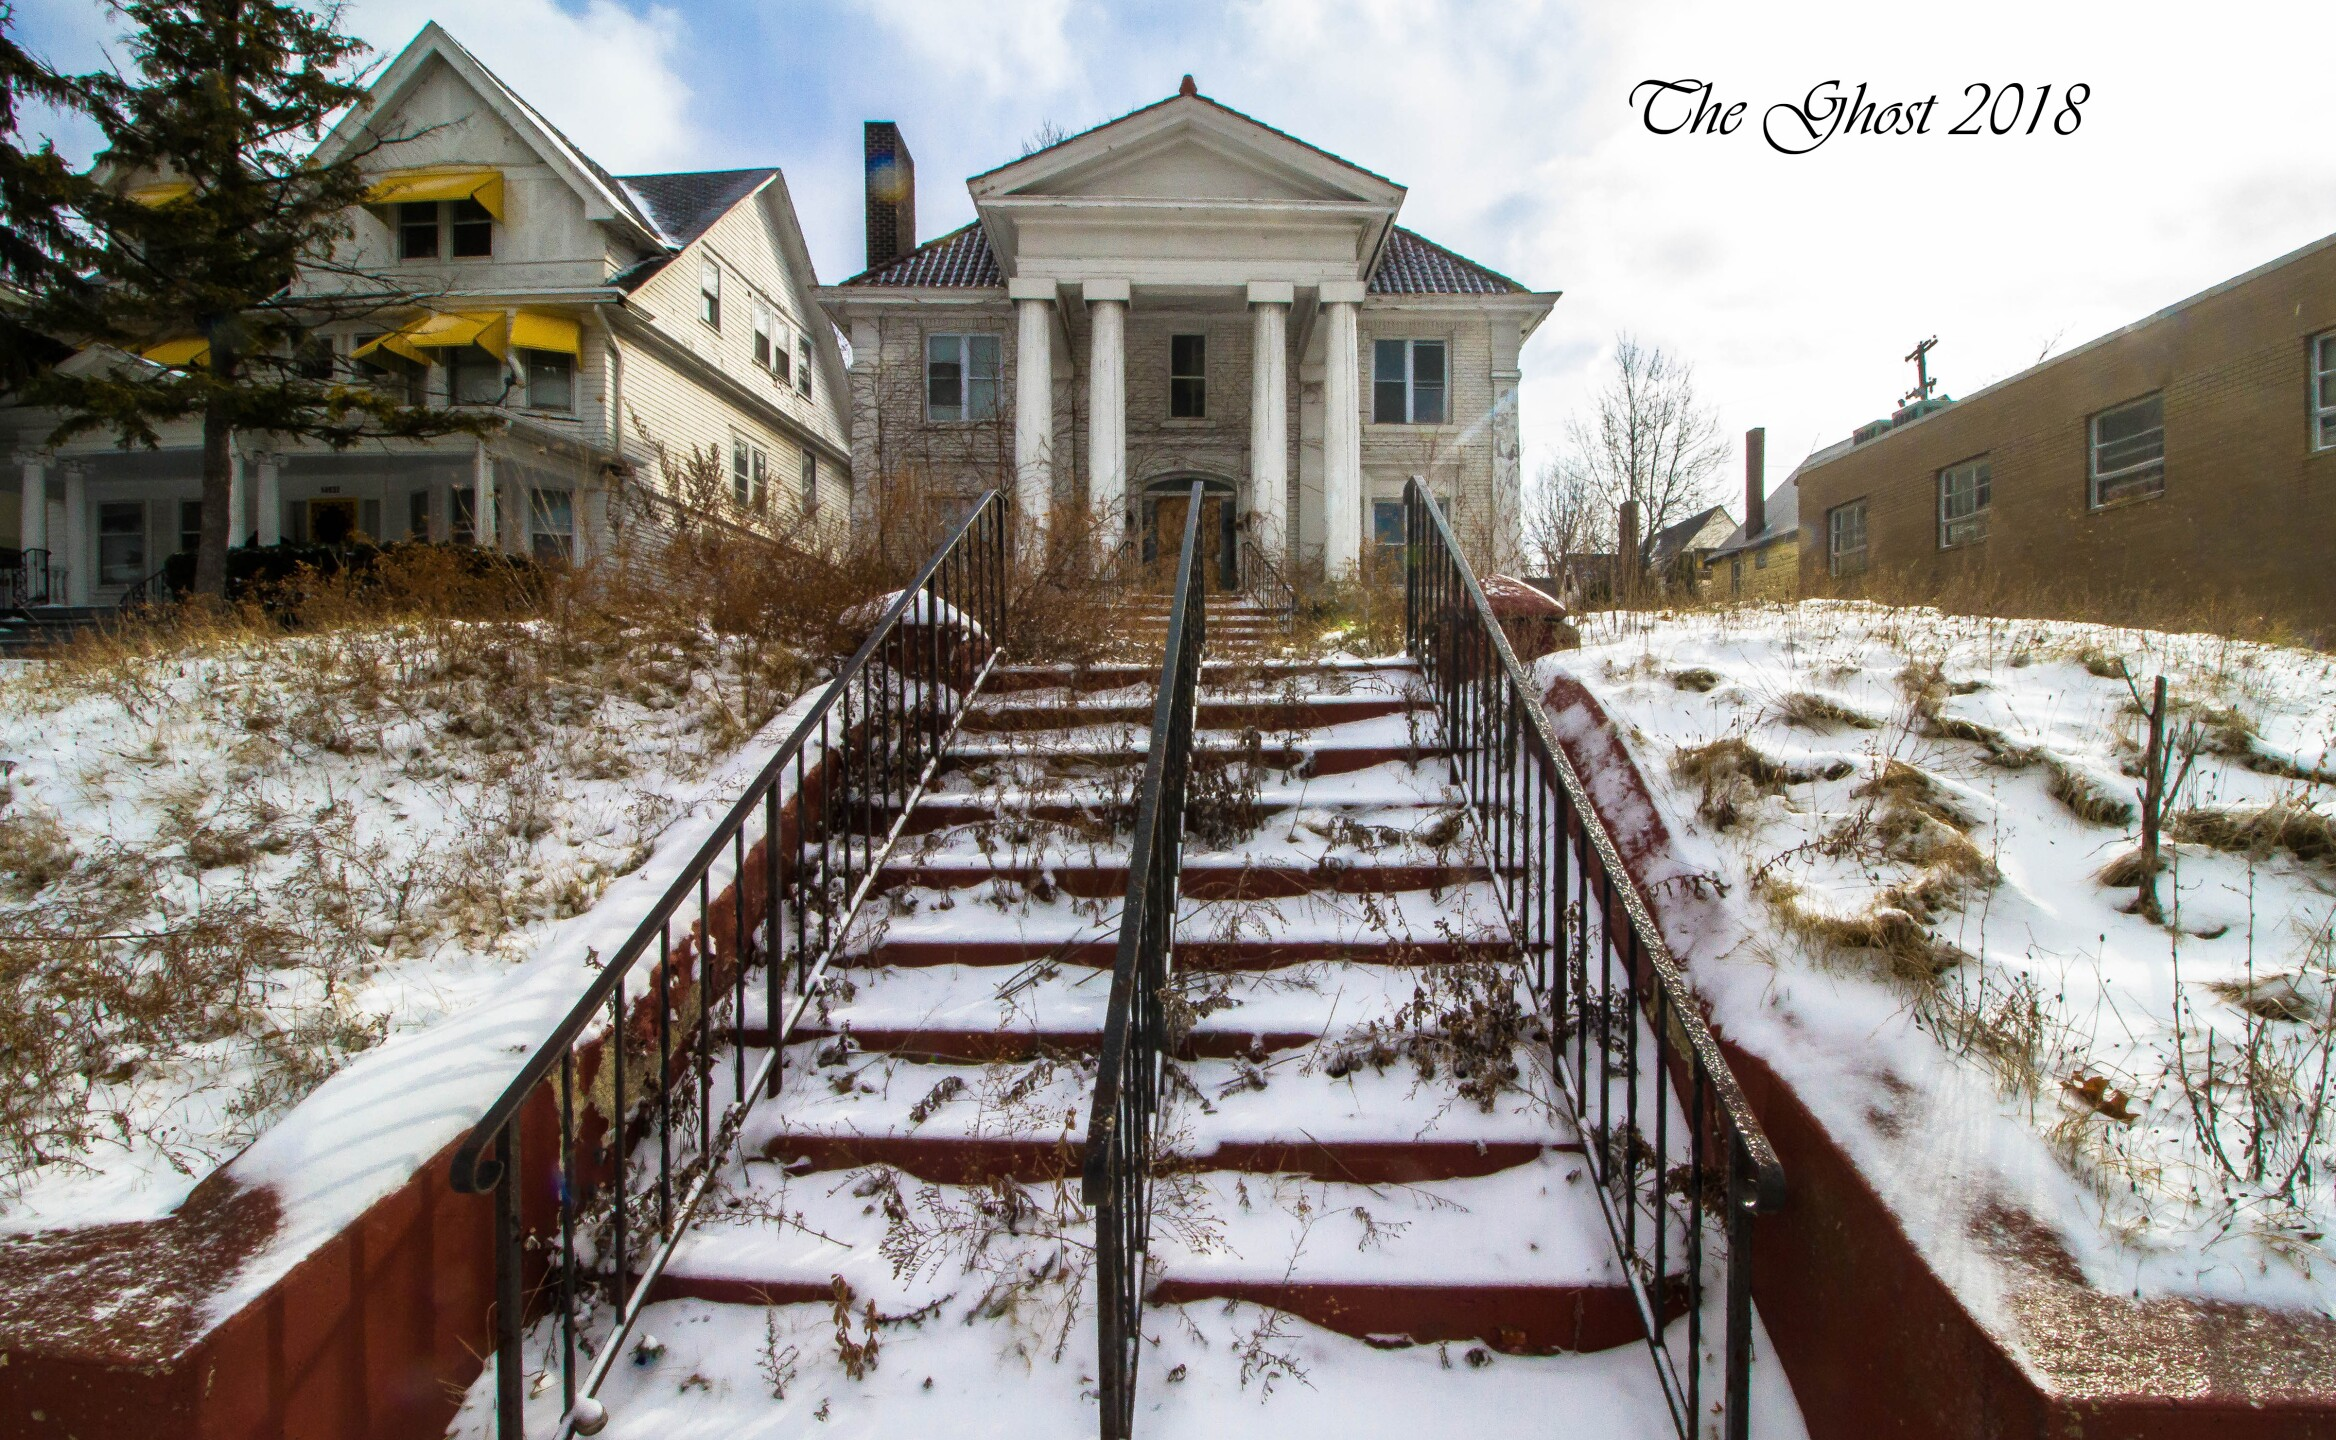 The Forgotten Ghost - urban explorer documents East Cleveland